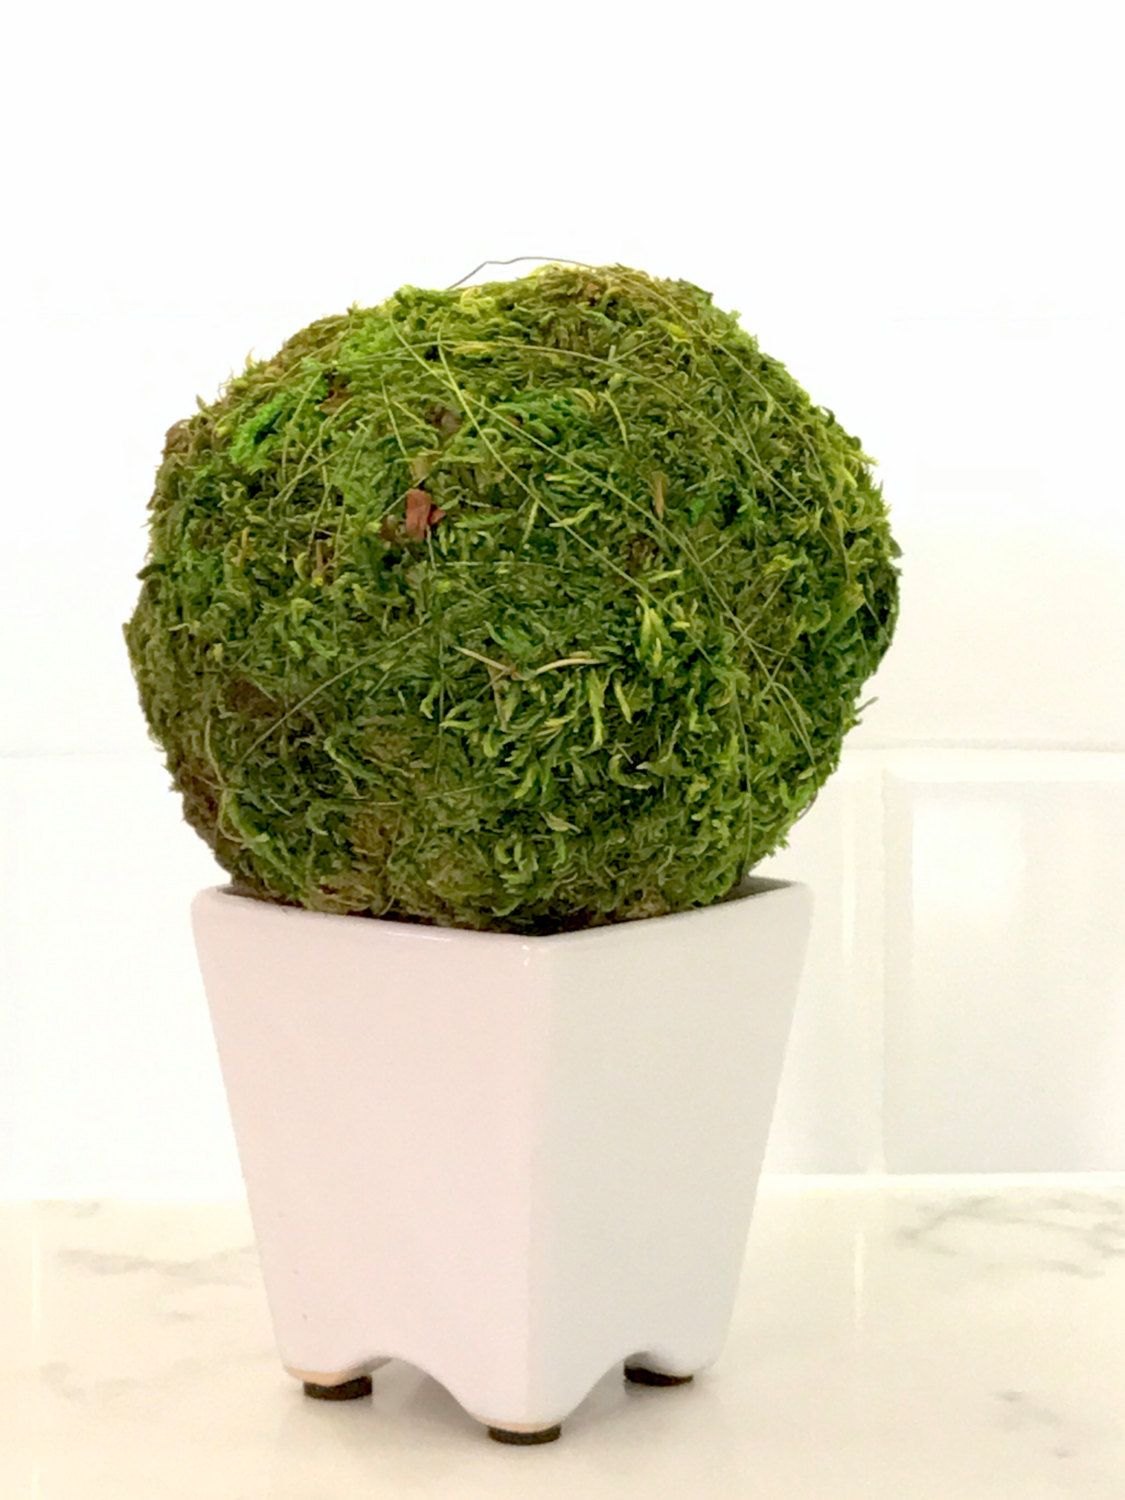 Decorative Moss Balls Amusing Green Moss Ball Decor Moss Pomander Green Balls White Ceramic Vase Review